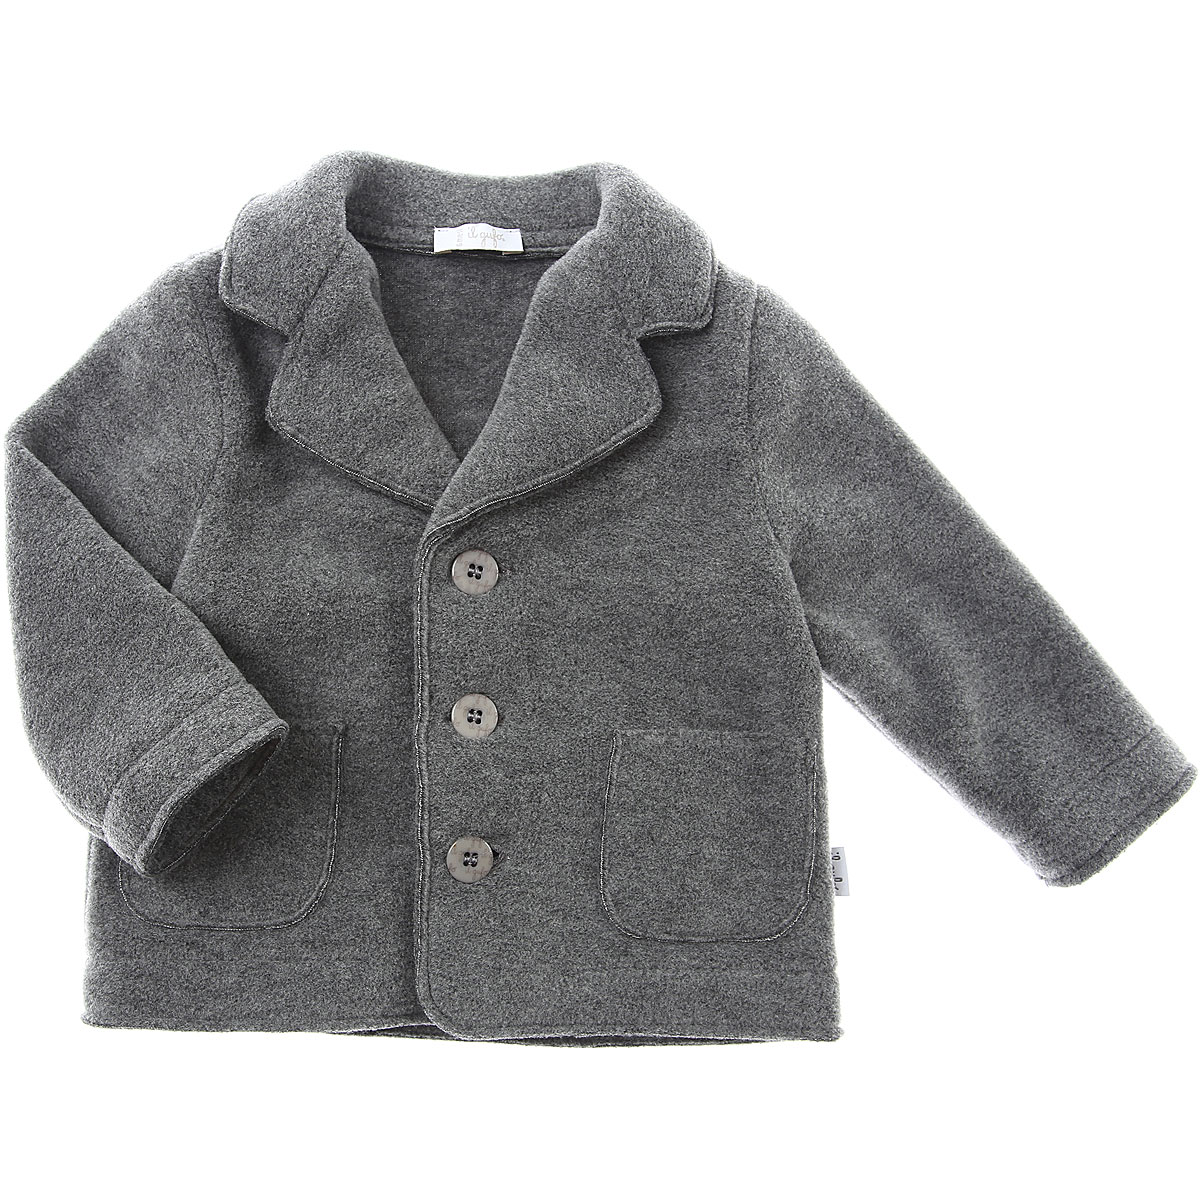 Il Gufo Baby Jacket for Boys On Sale, Grey, polyester, 2019, 12 M 18M 2Y 6M